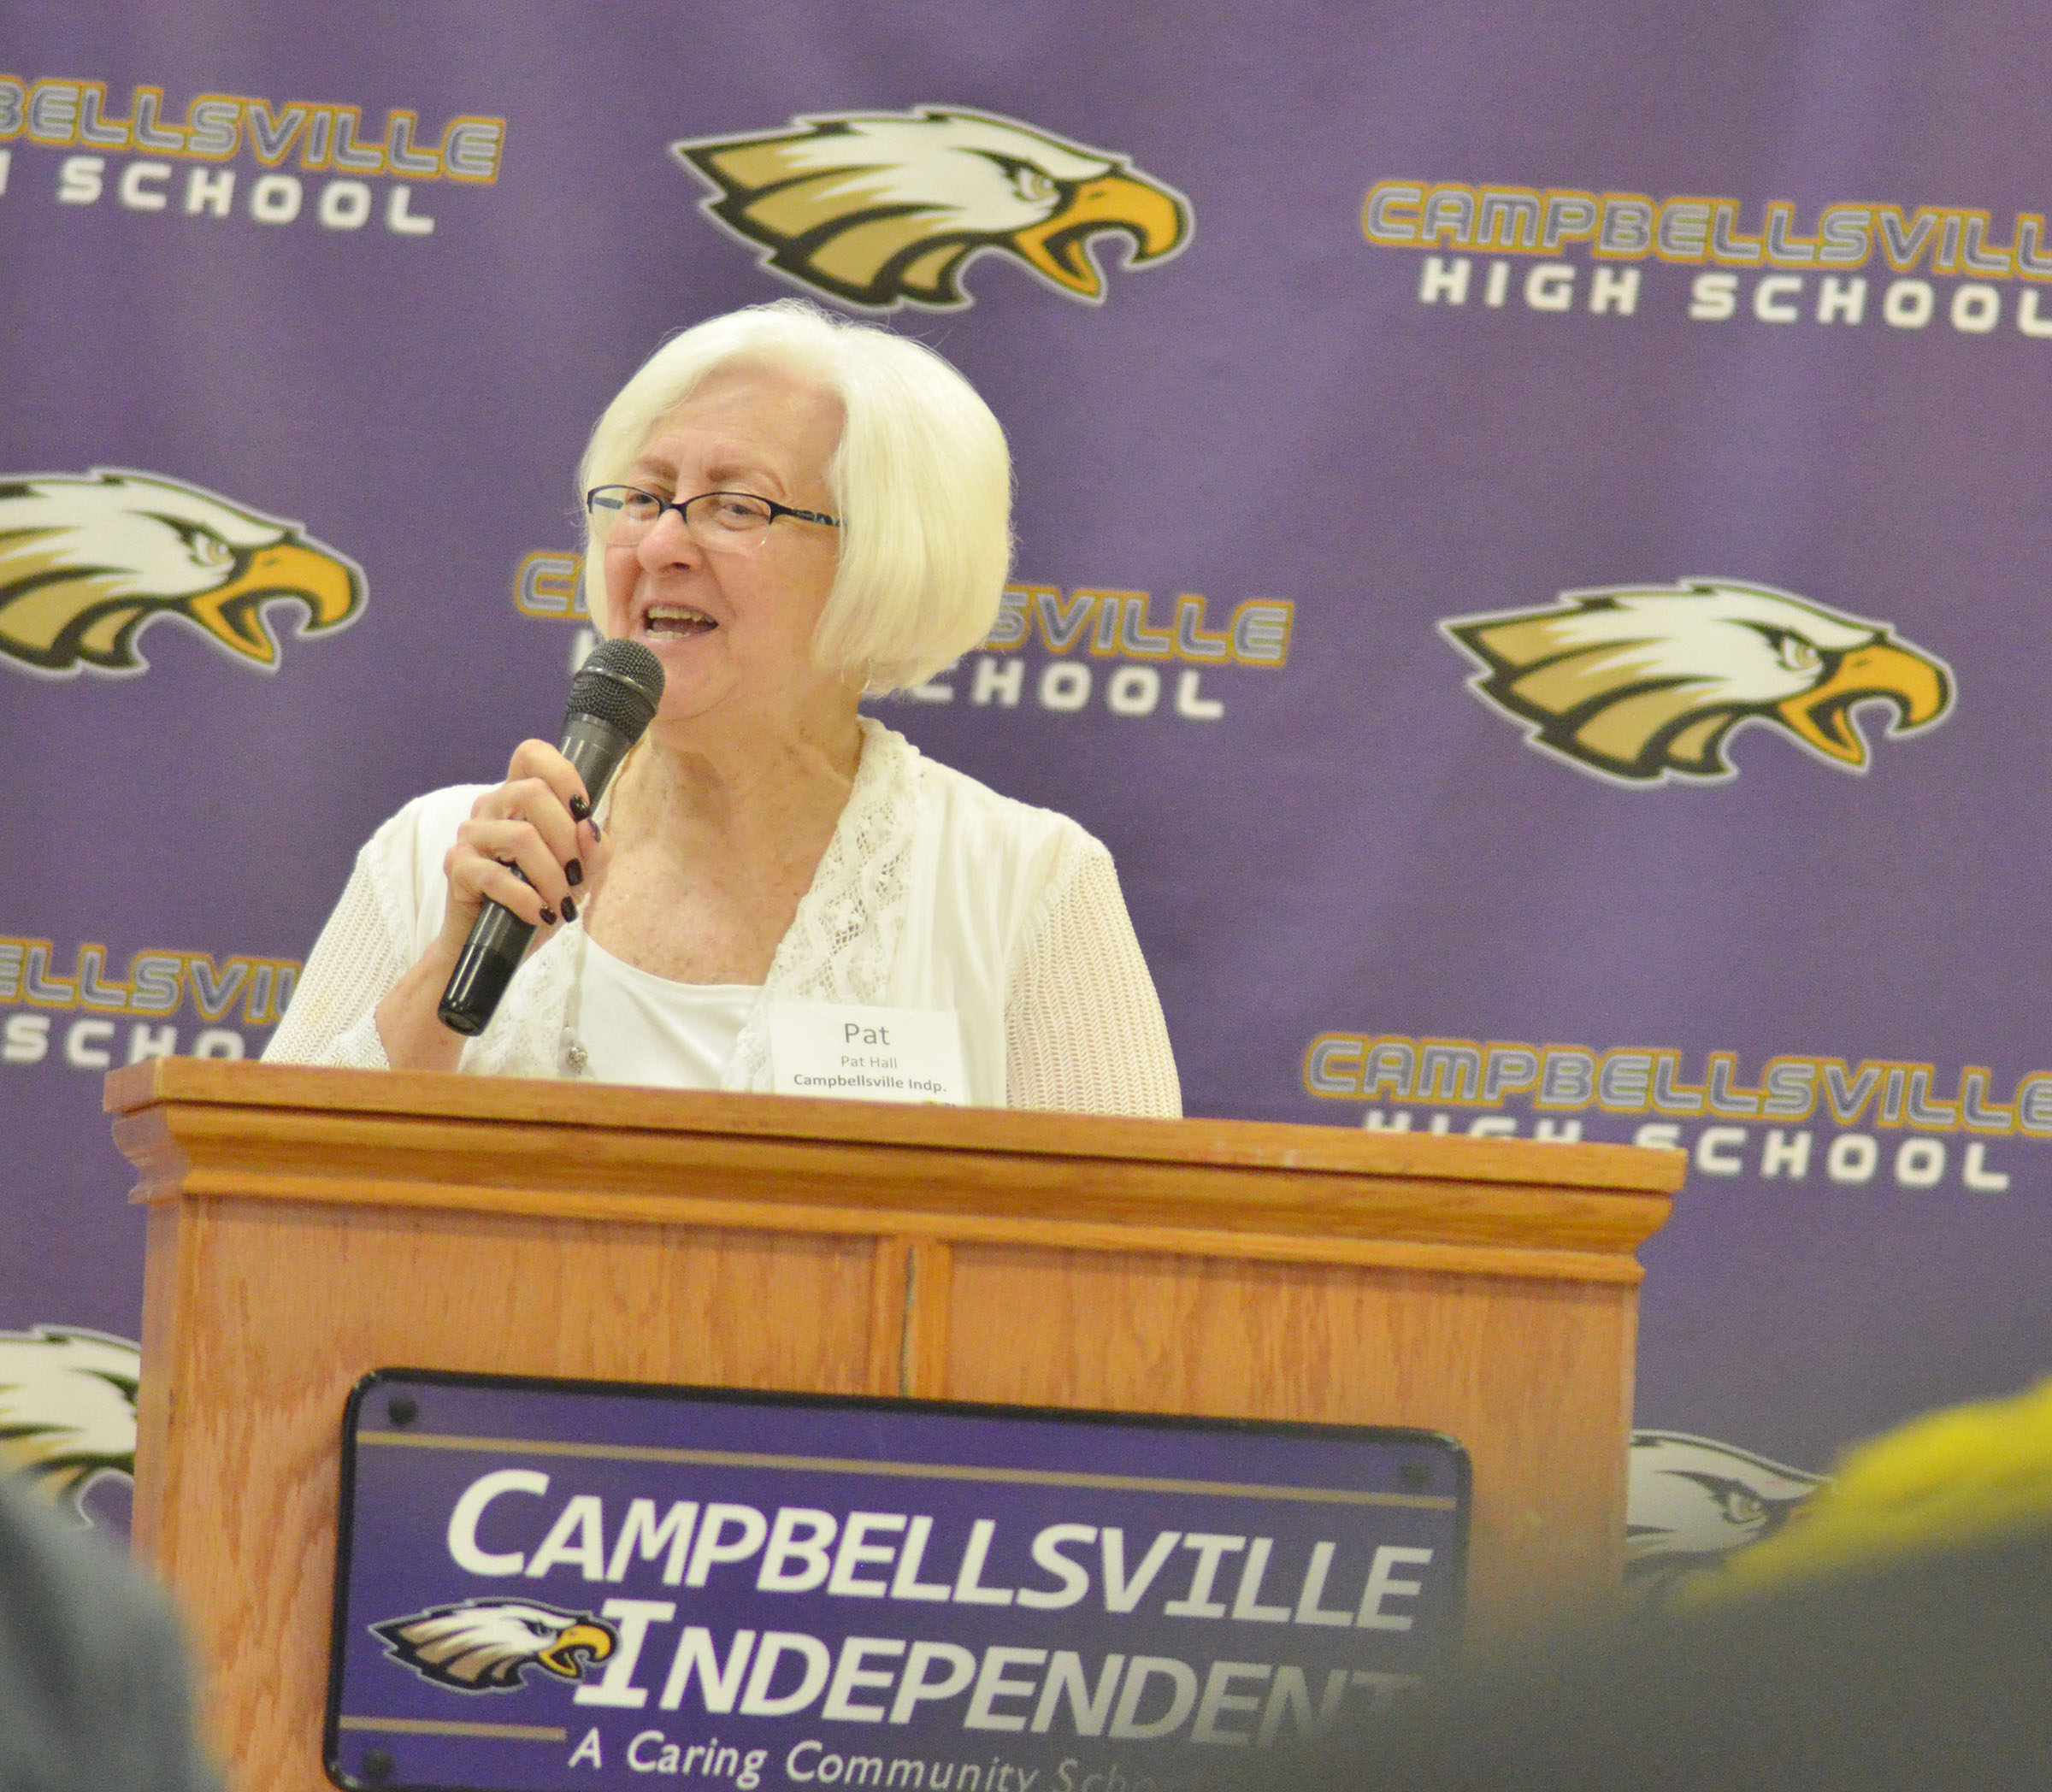 Campbellsville Board of Education Chair Pat Hall, who also serves as KSBA regional chairperson, welcomes those in attendance to Campbellsville High School.